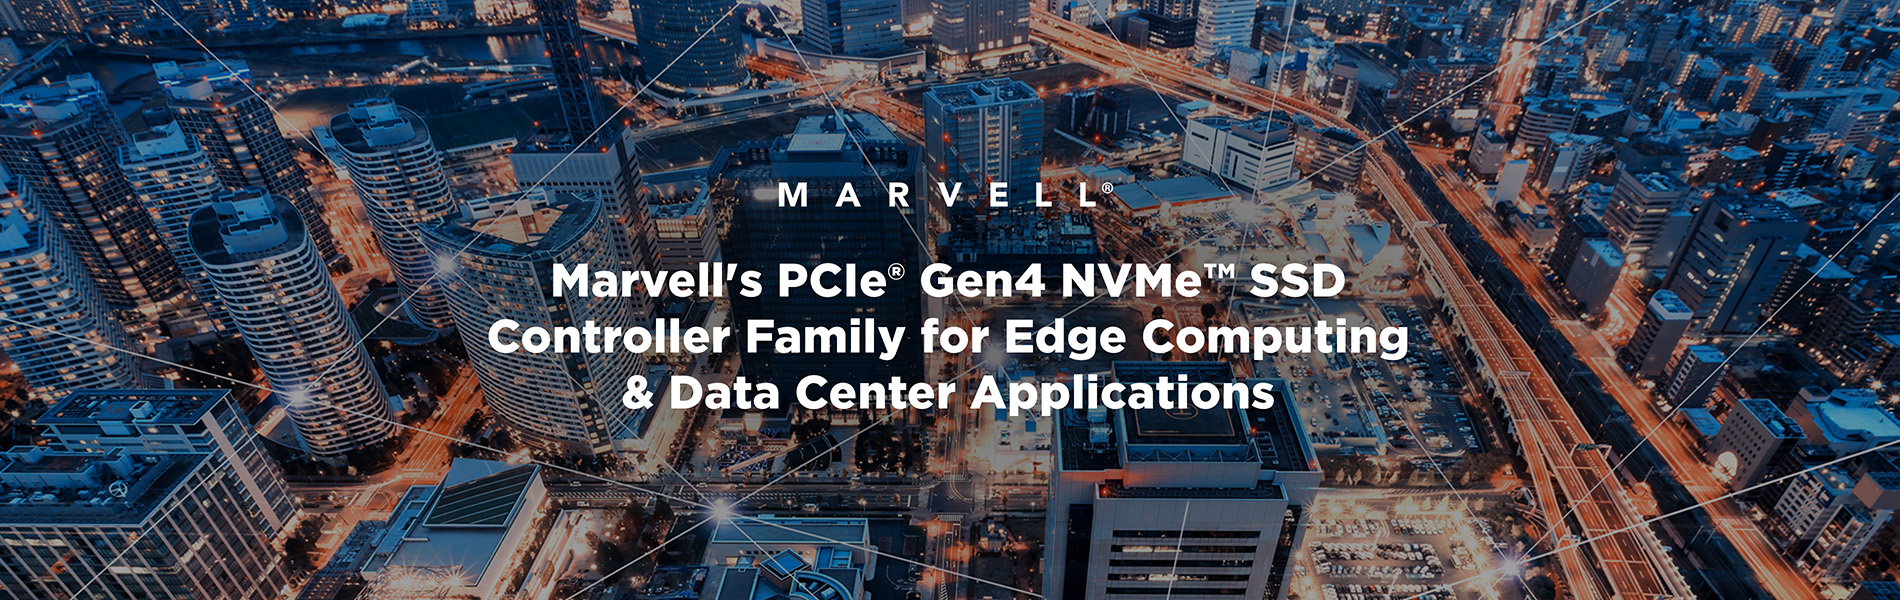 Banner that says Marvell's PCle Gen4 NVMe SSD Controller Family for Edge Computing and Data Center Applications